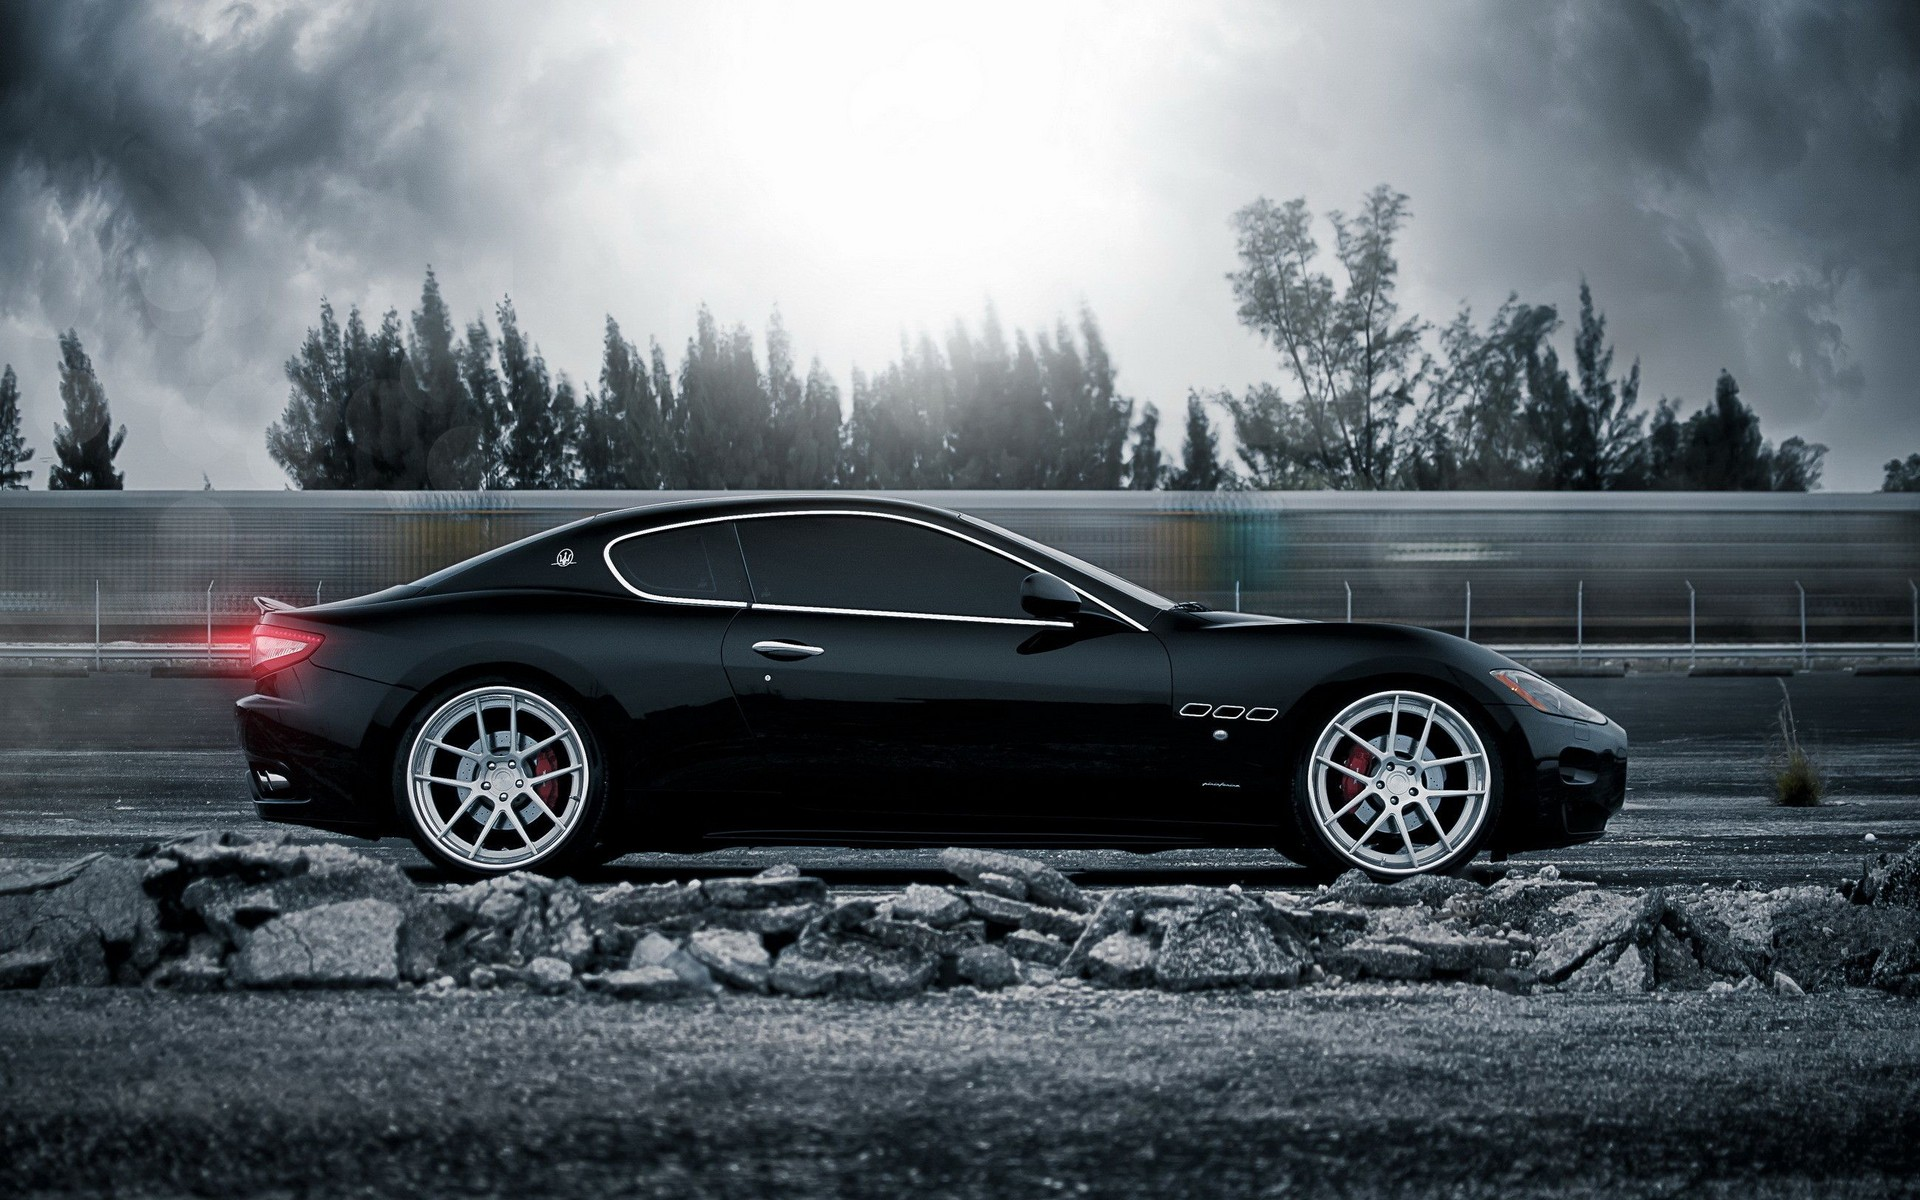 Maserati HD Cars 4k Wallpapers Images Backgrounds Photos And